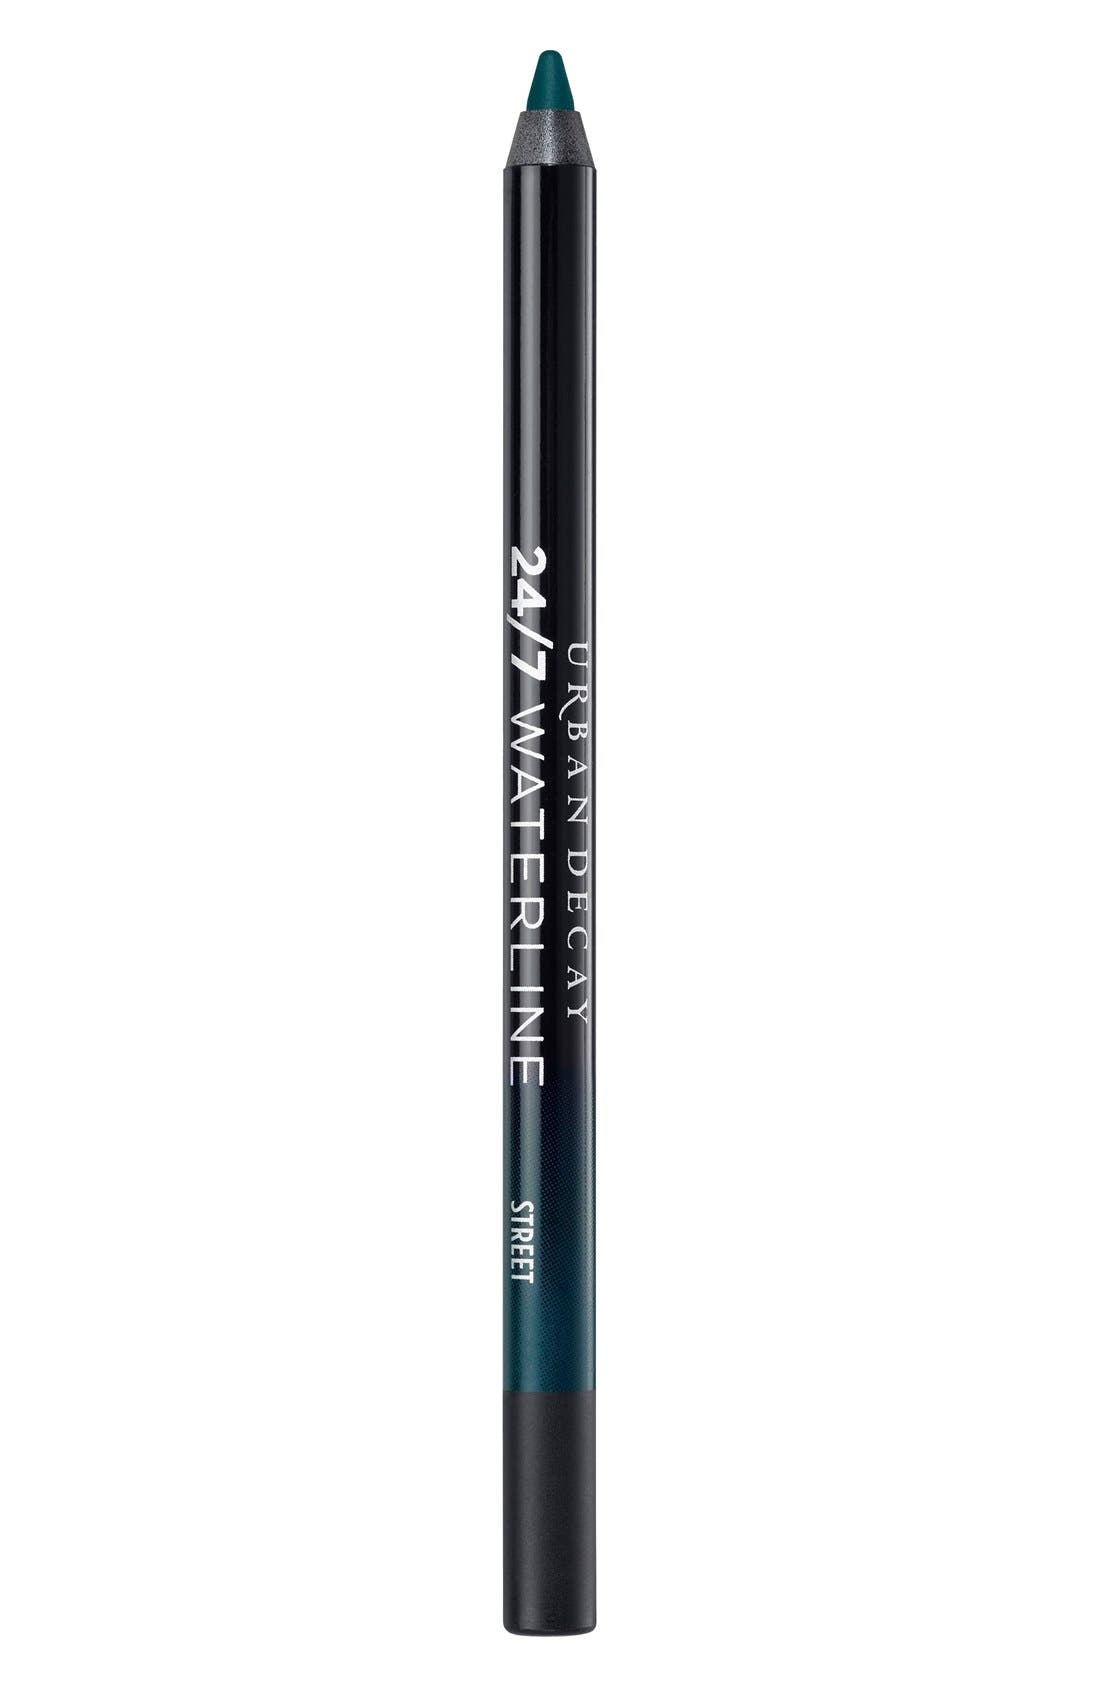 24/7 Waterline Eye Pencil,                             Main thumbnail 1, color,                             300